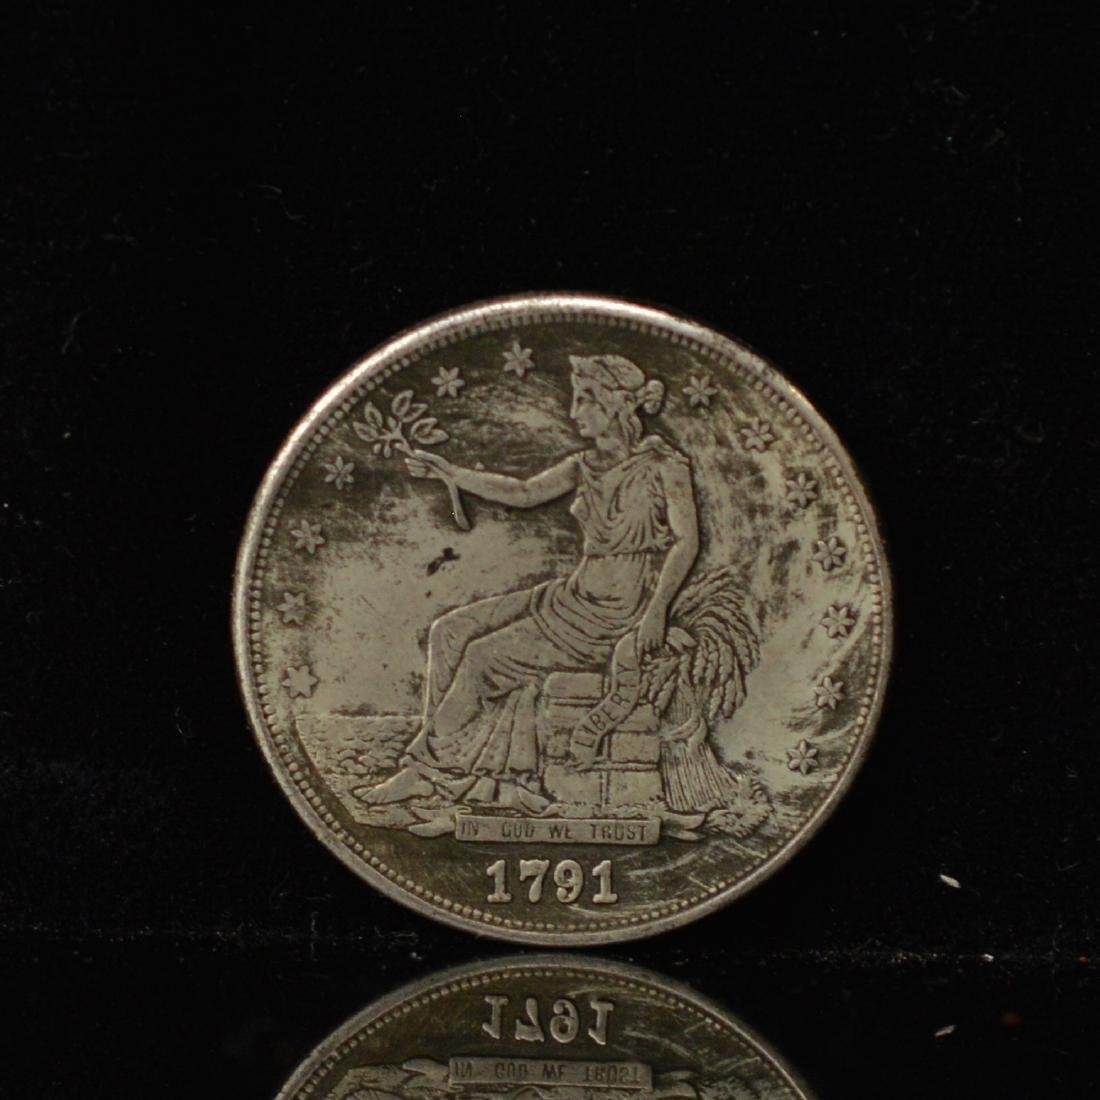 Two US Silver coins - 4